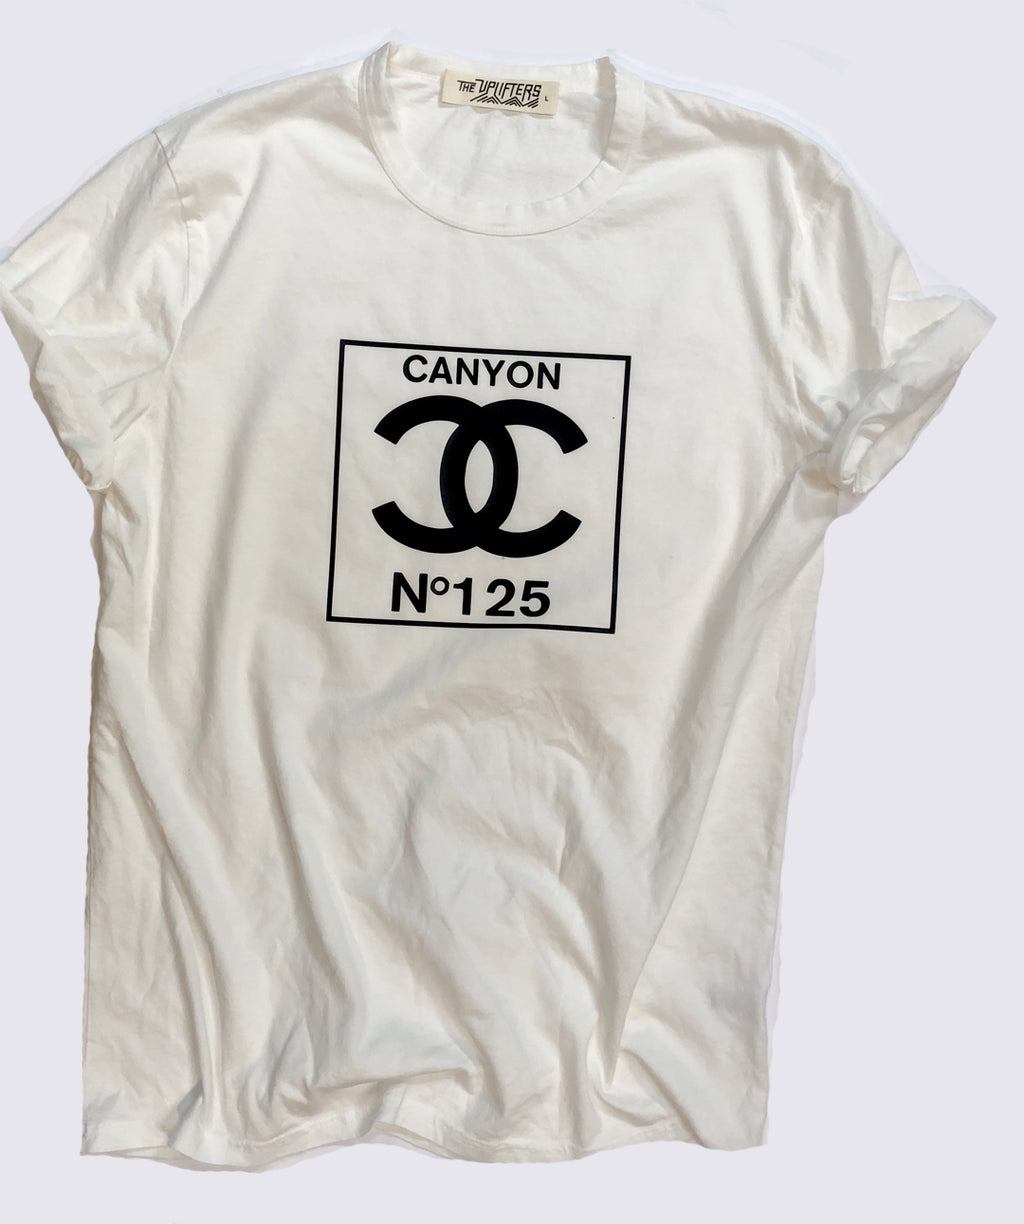 S. Adult double C tee - washed white